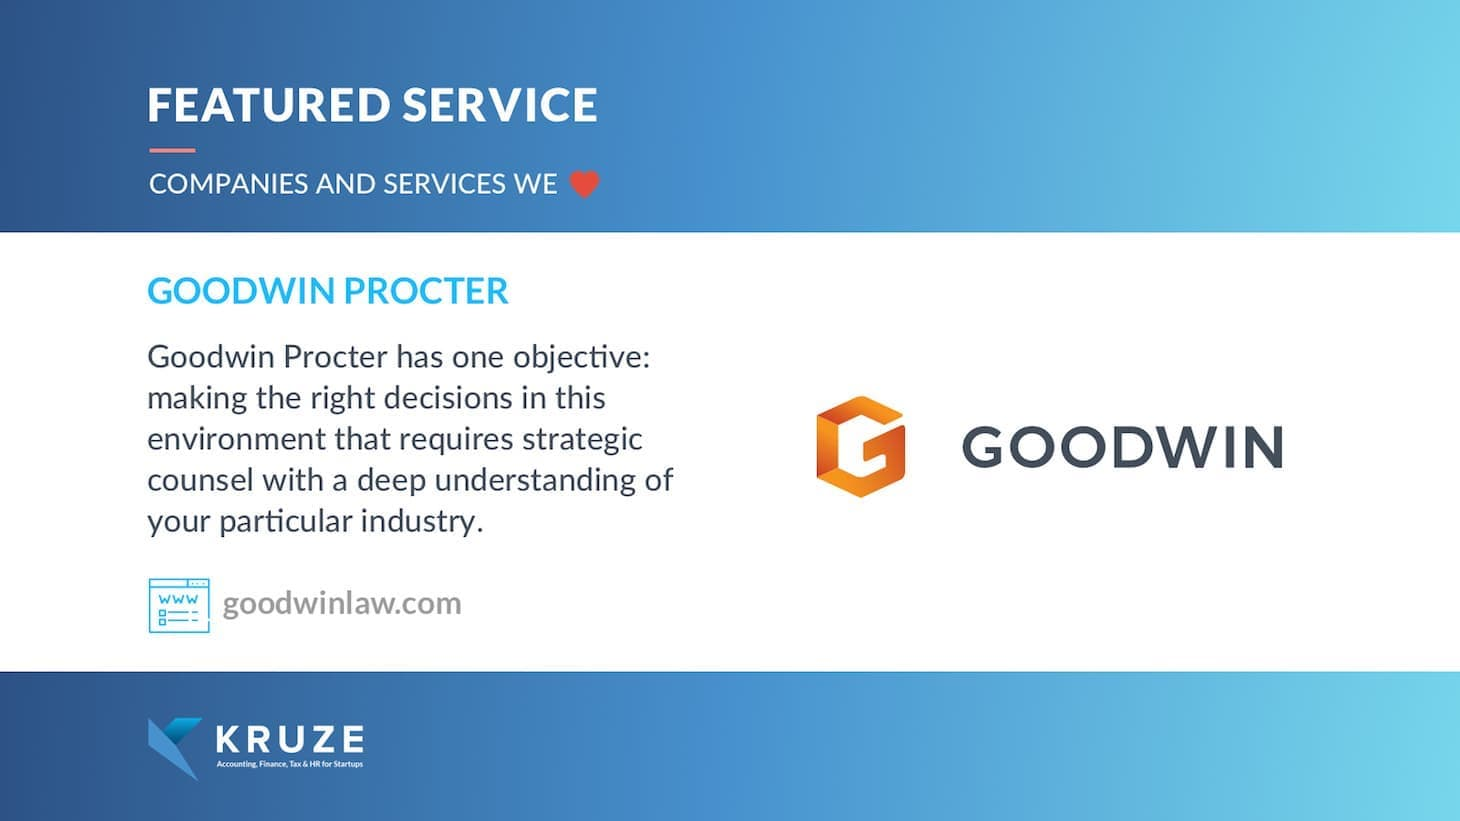 Featured Service - Goodwin Procter